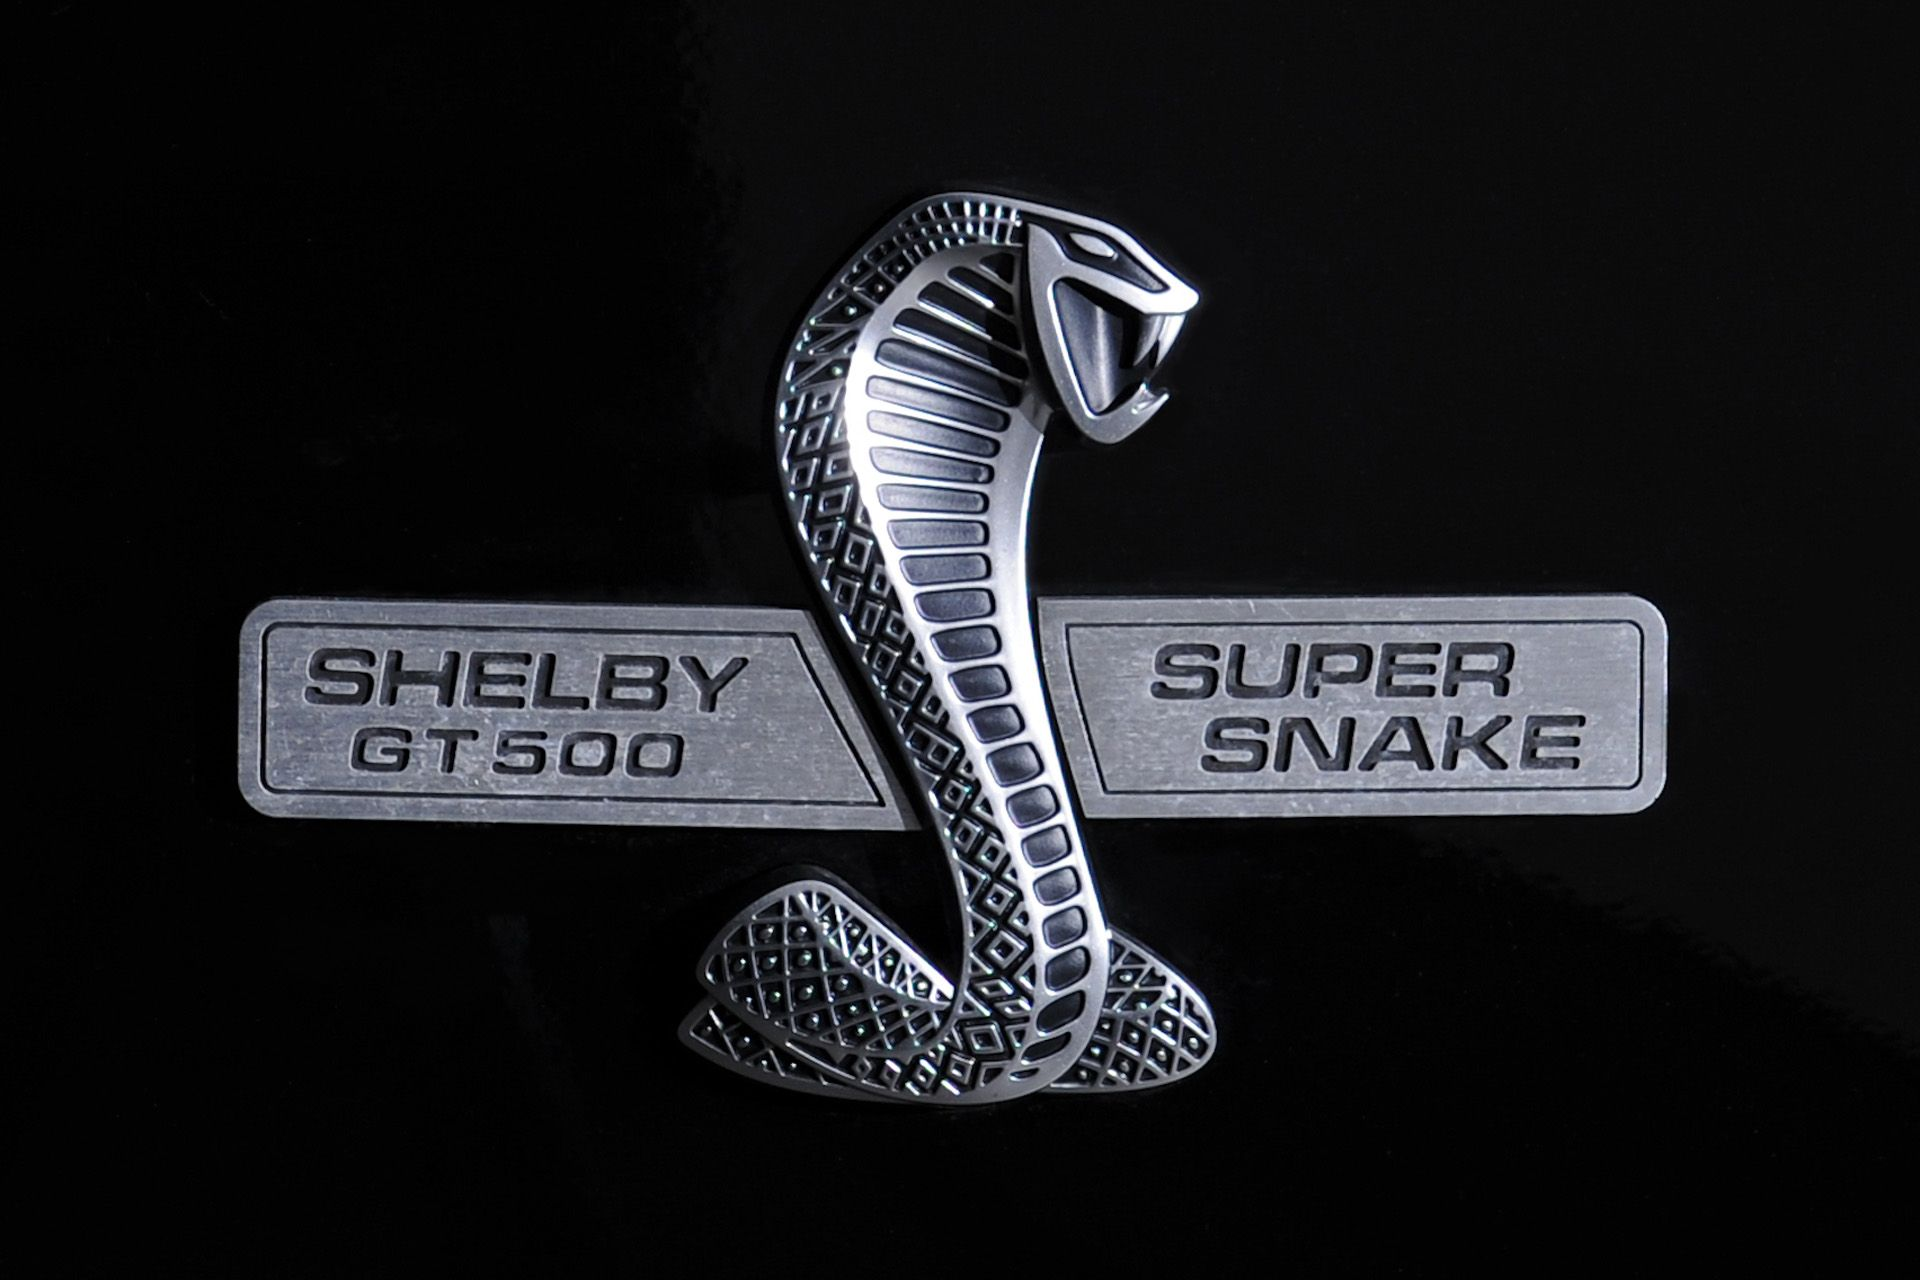 Shelby logo free 3d model ready for cg projects available formats shelby logo free 3d model ready for cg projects available formats other free 3d models pinterest 3d 3d animation and animation buycottarizona Choice Image